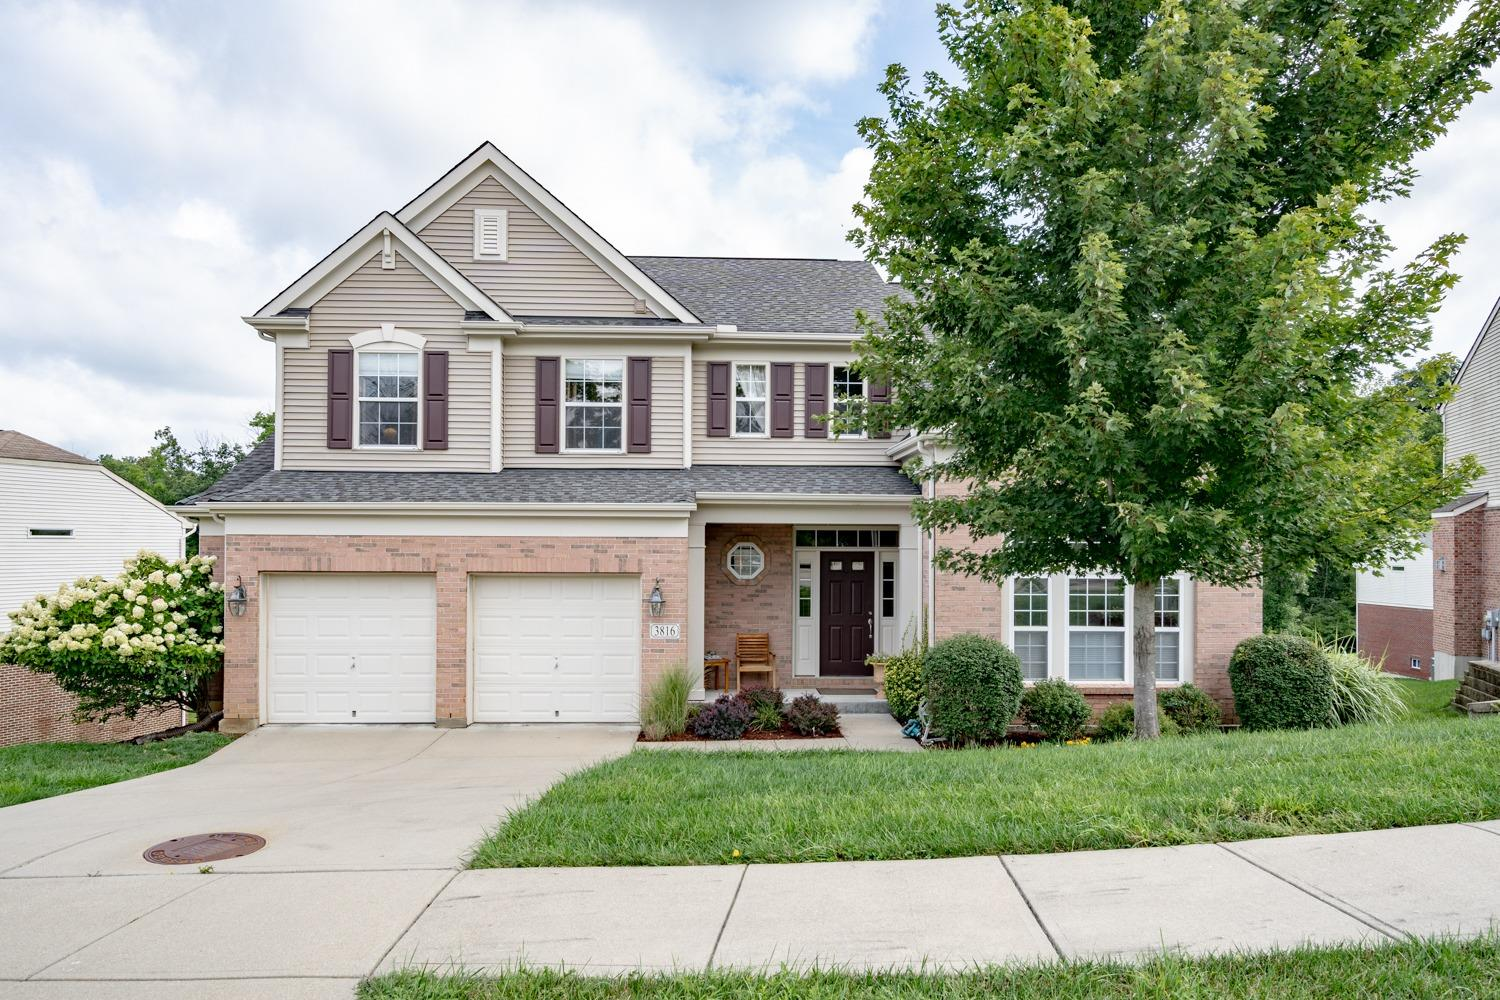 3816 Bear Ln Miami Twp. (West), OH